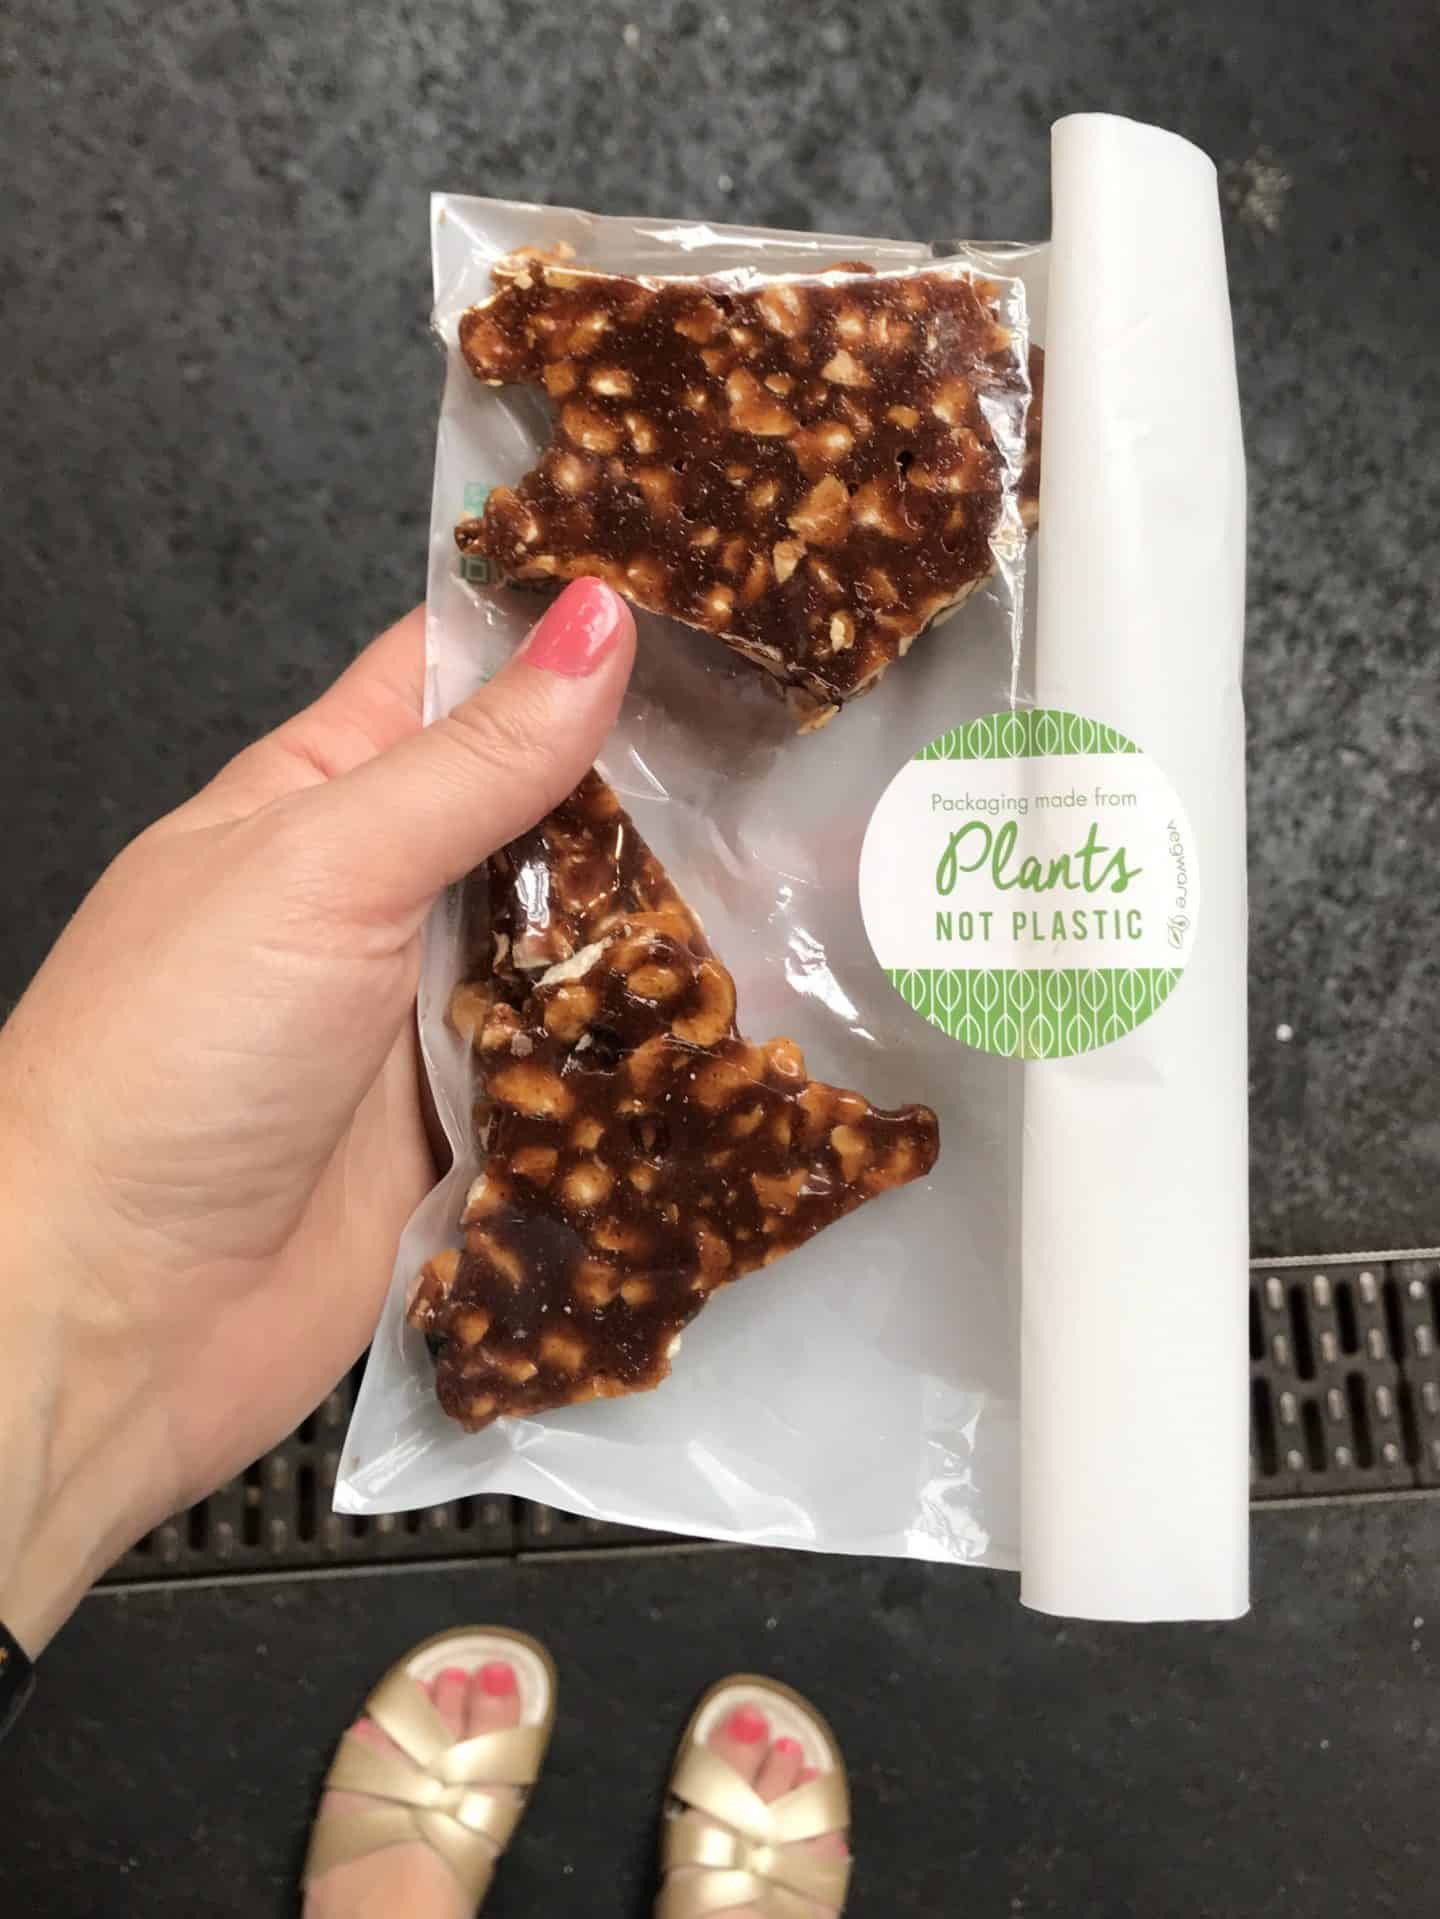 Delicious treats in plastic-free packaging from Borough Market